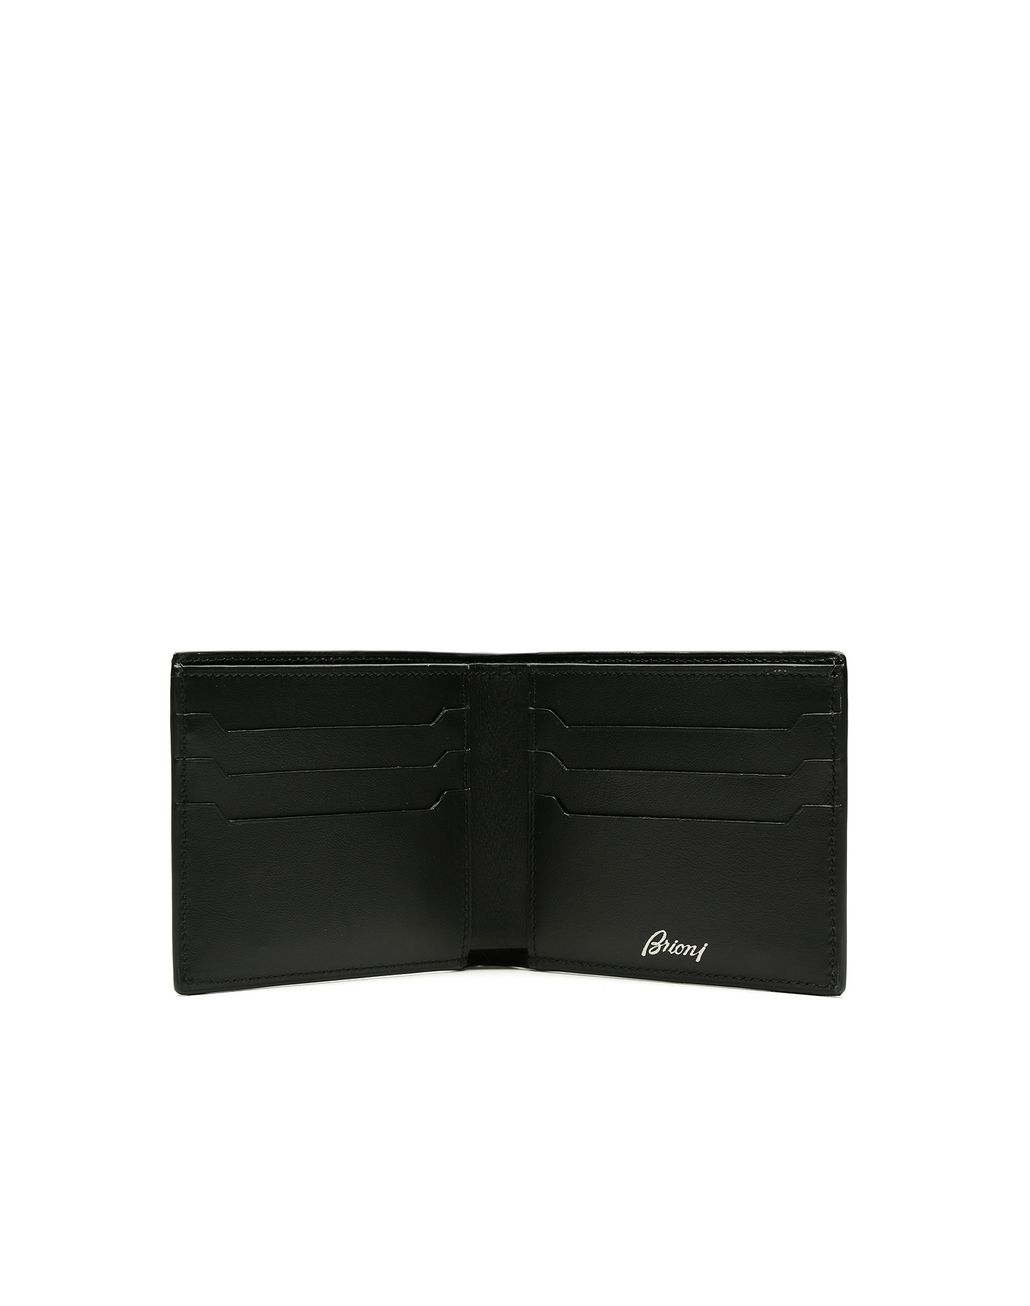 BRIONI Blue and Black Slim Calfskin Wallet Leather Goods Man r